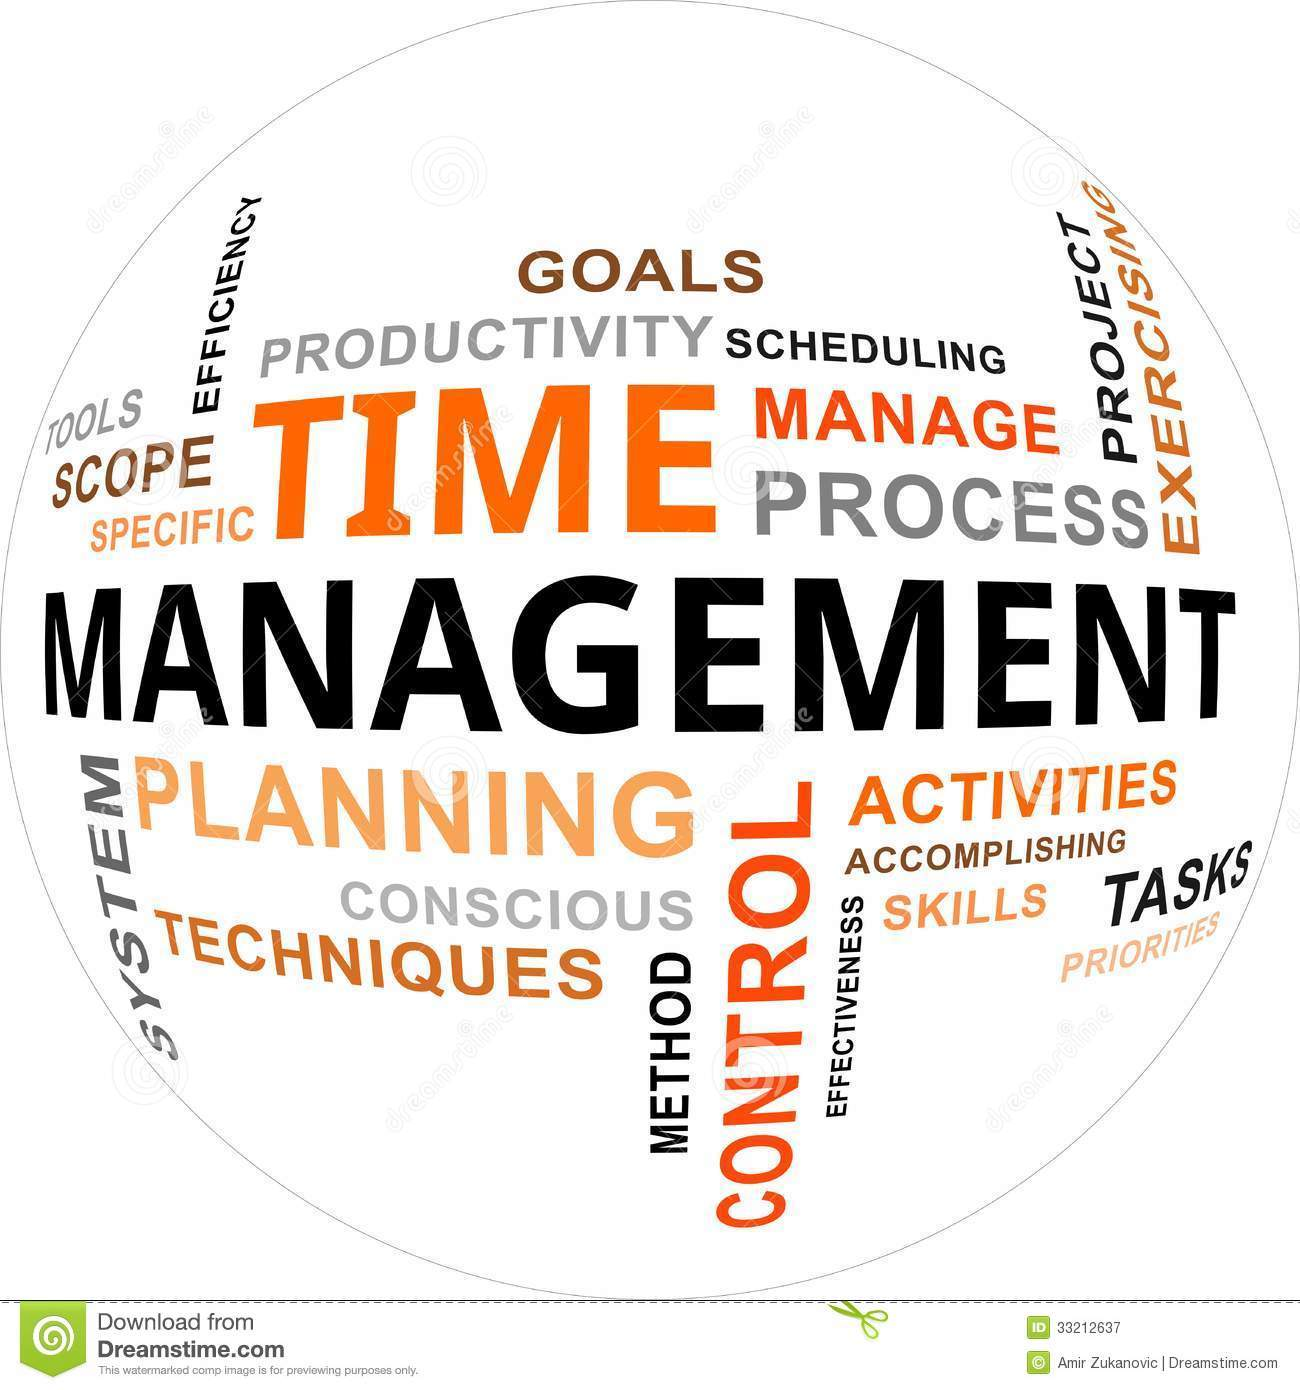 Time management as a university student easyuni forums word cloud time management related items 33212637g1300x1390 140 kb altavistaventures